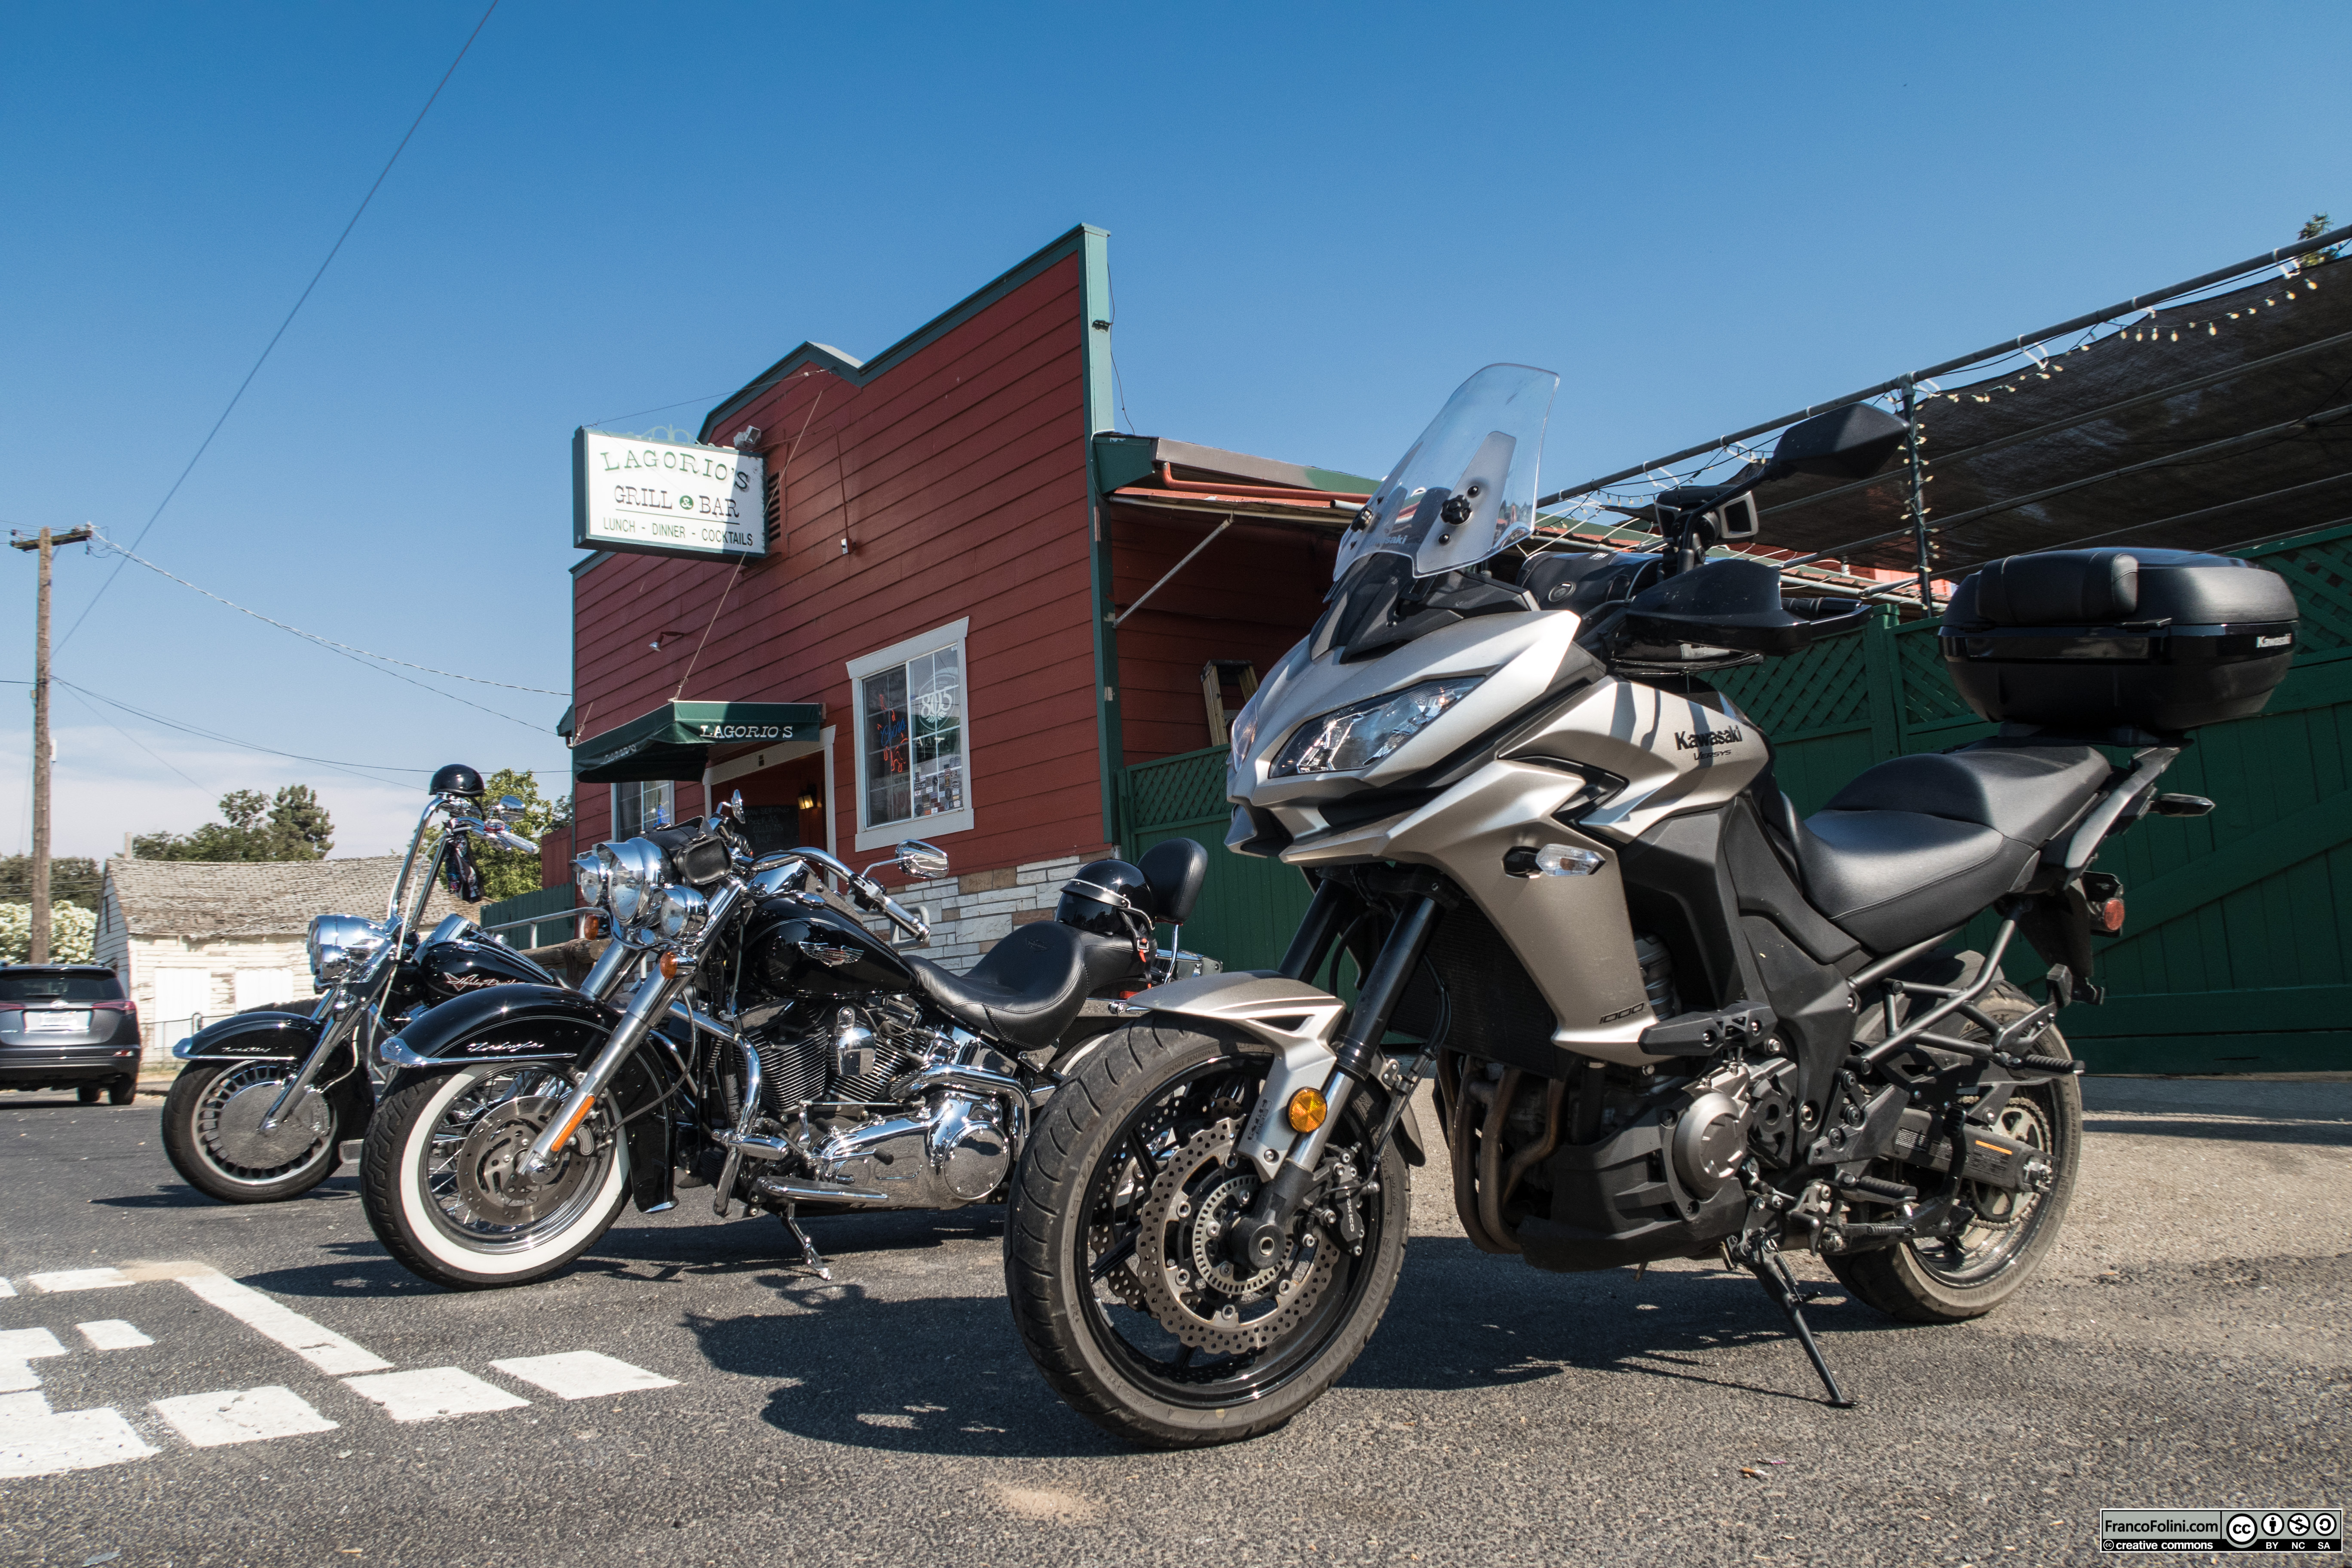 Lagorio's Grill & Bar in Farmington, a popular stop for motorbikers